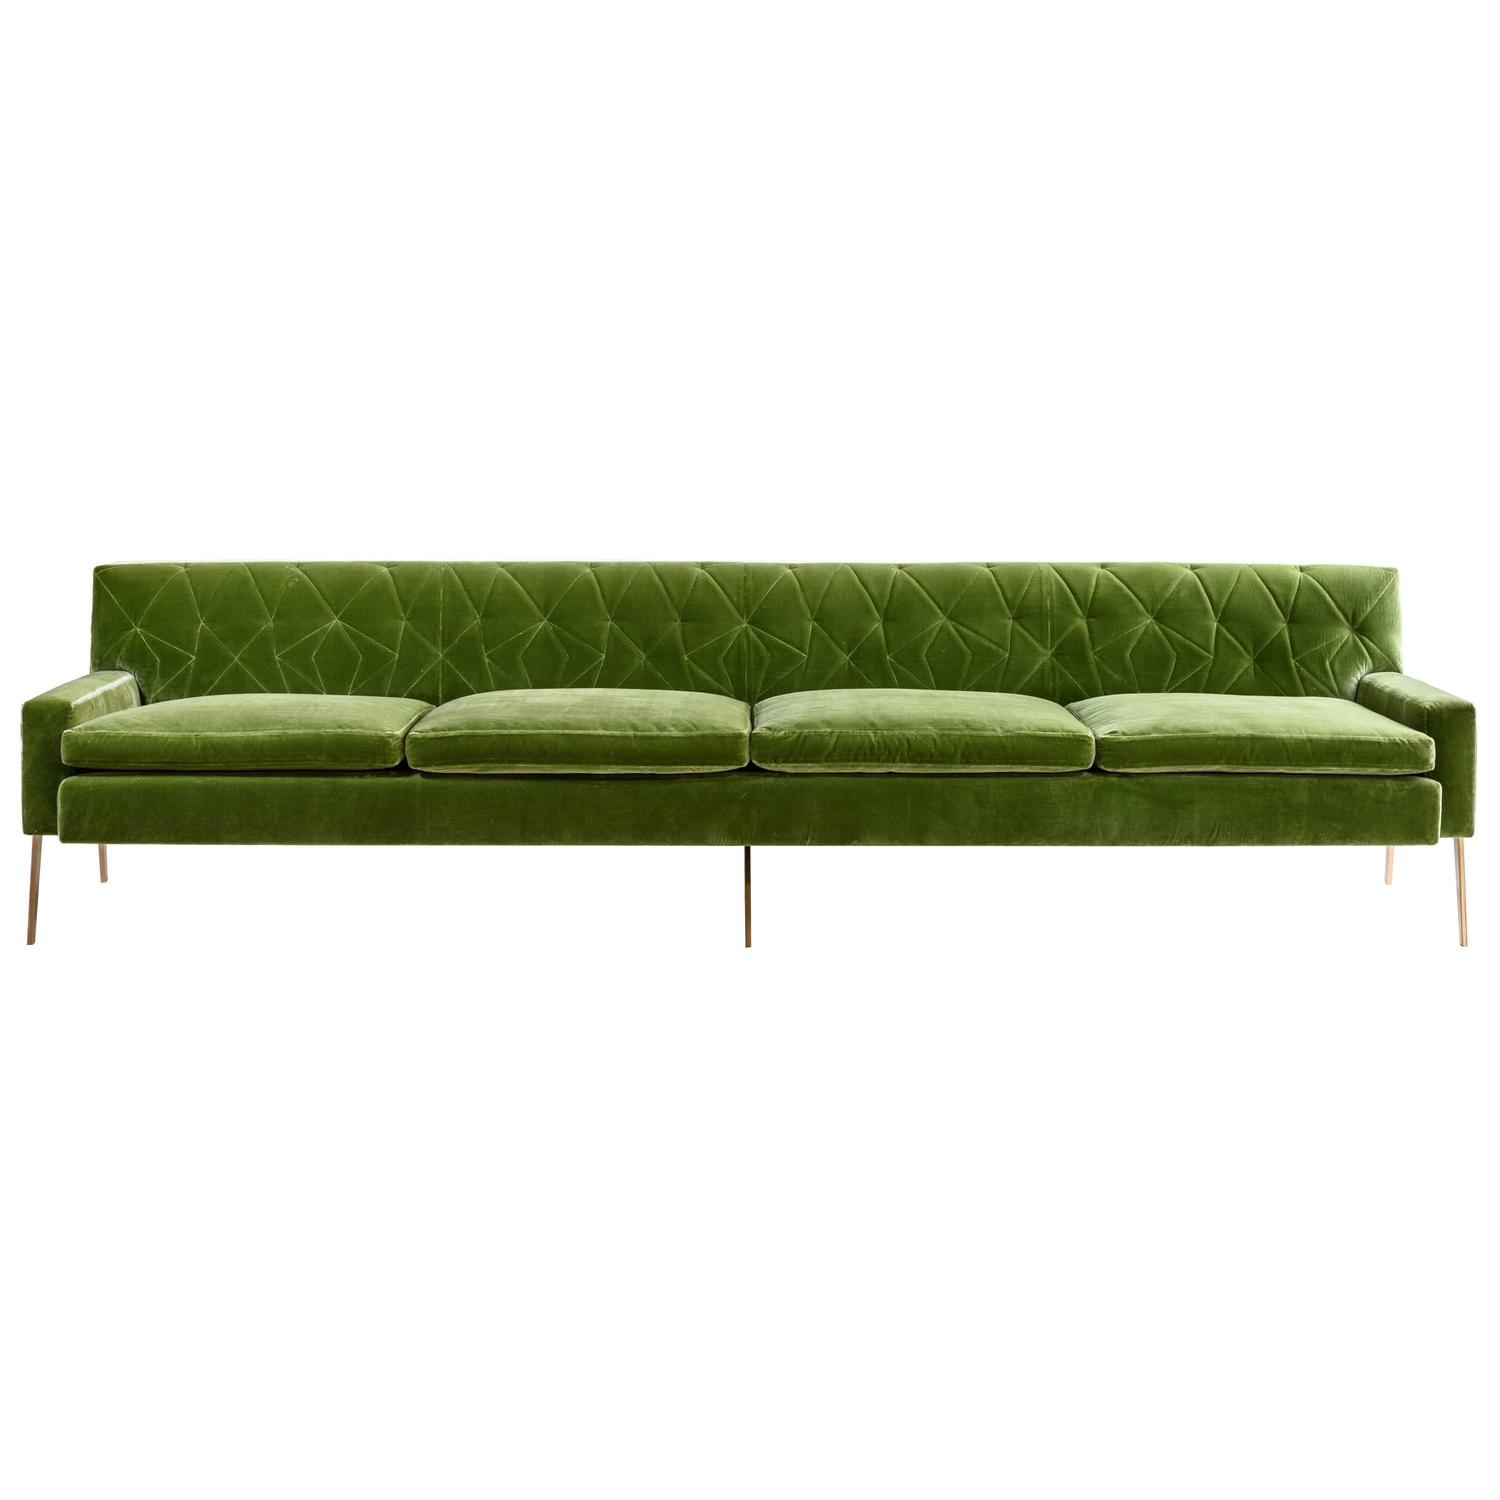 pink tufted sofa for sale wilson set mayweather with silk velvet back in fuchsia